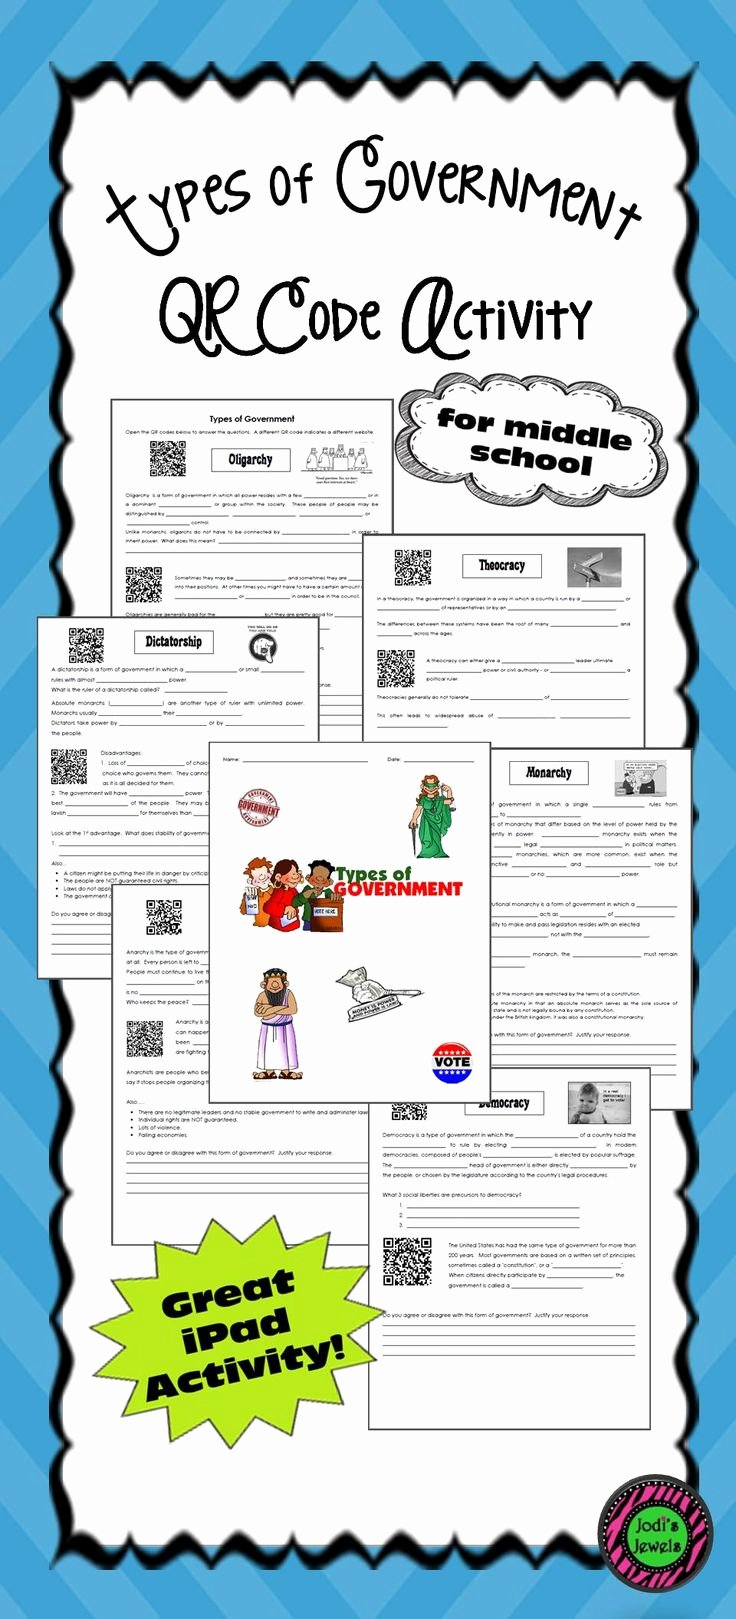 Types Of Government Worksheet Answers Best Of 569 Best Images About Science social Stu S On Pinterest